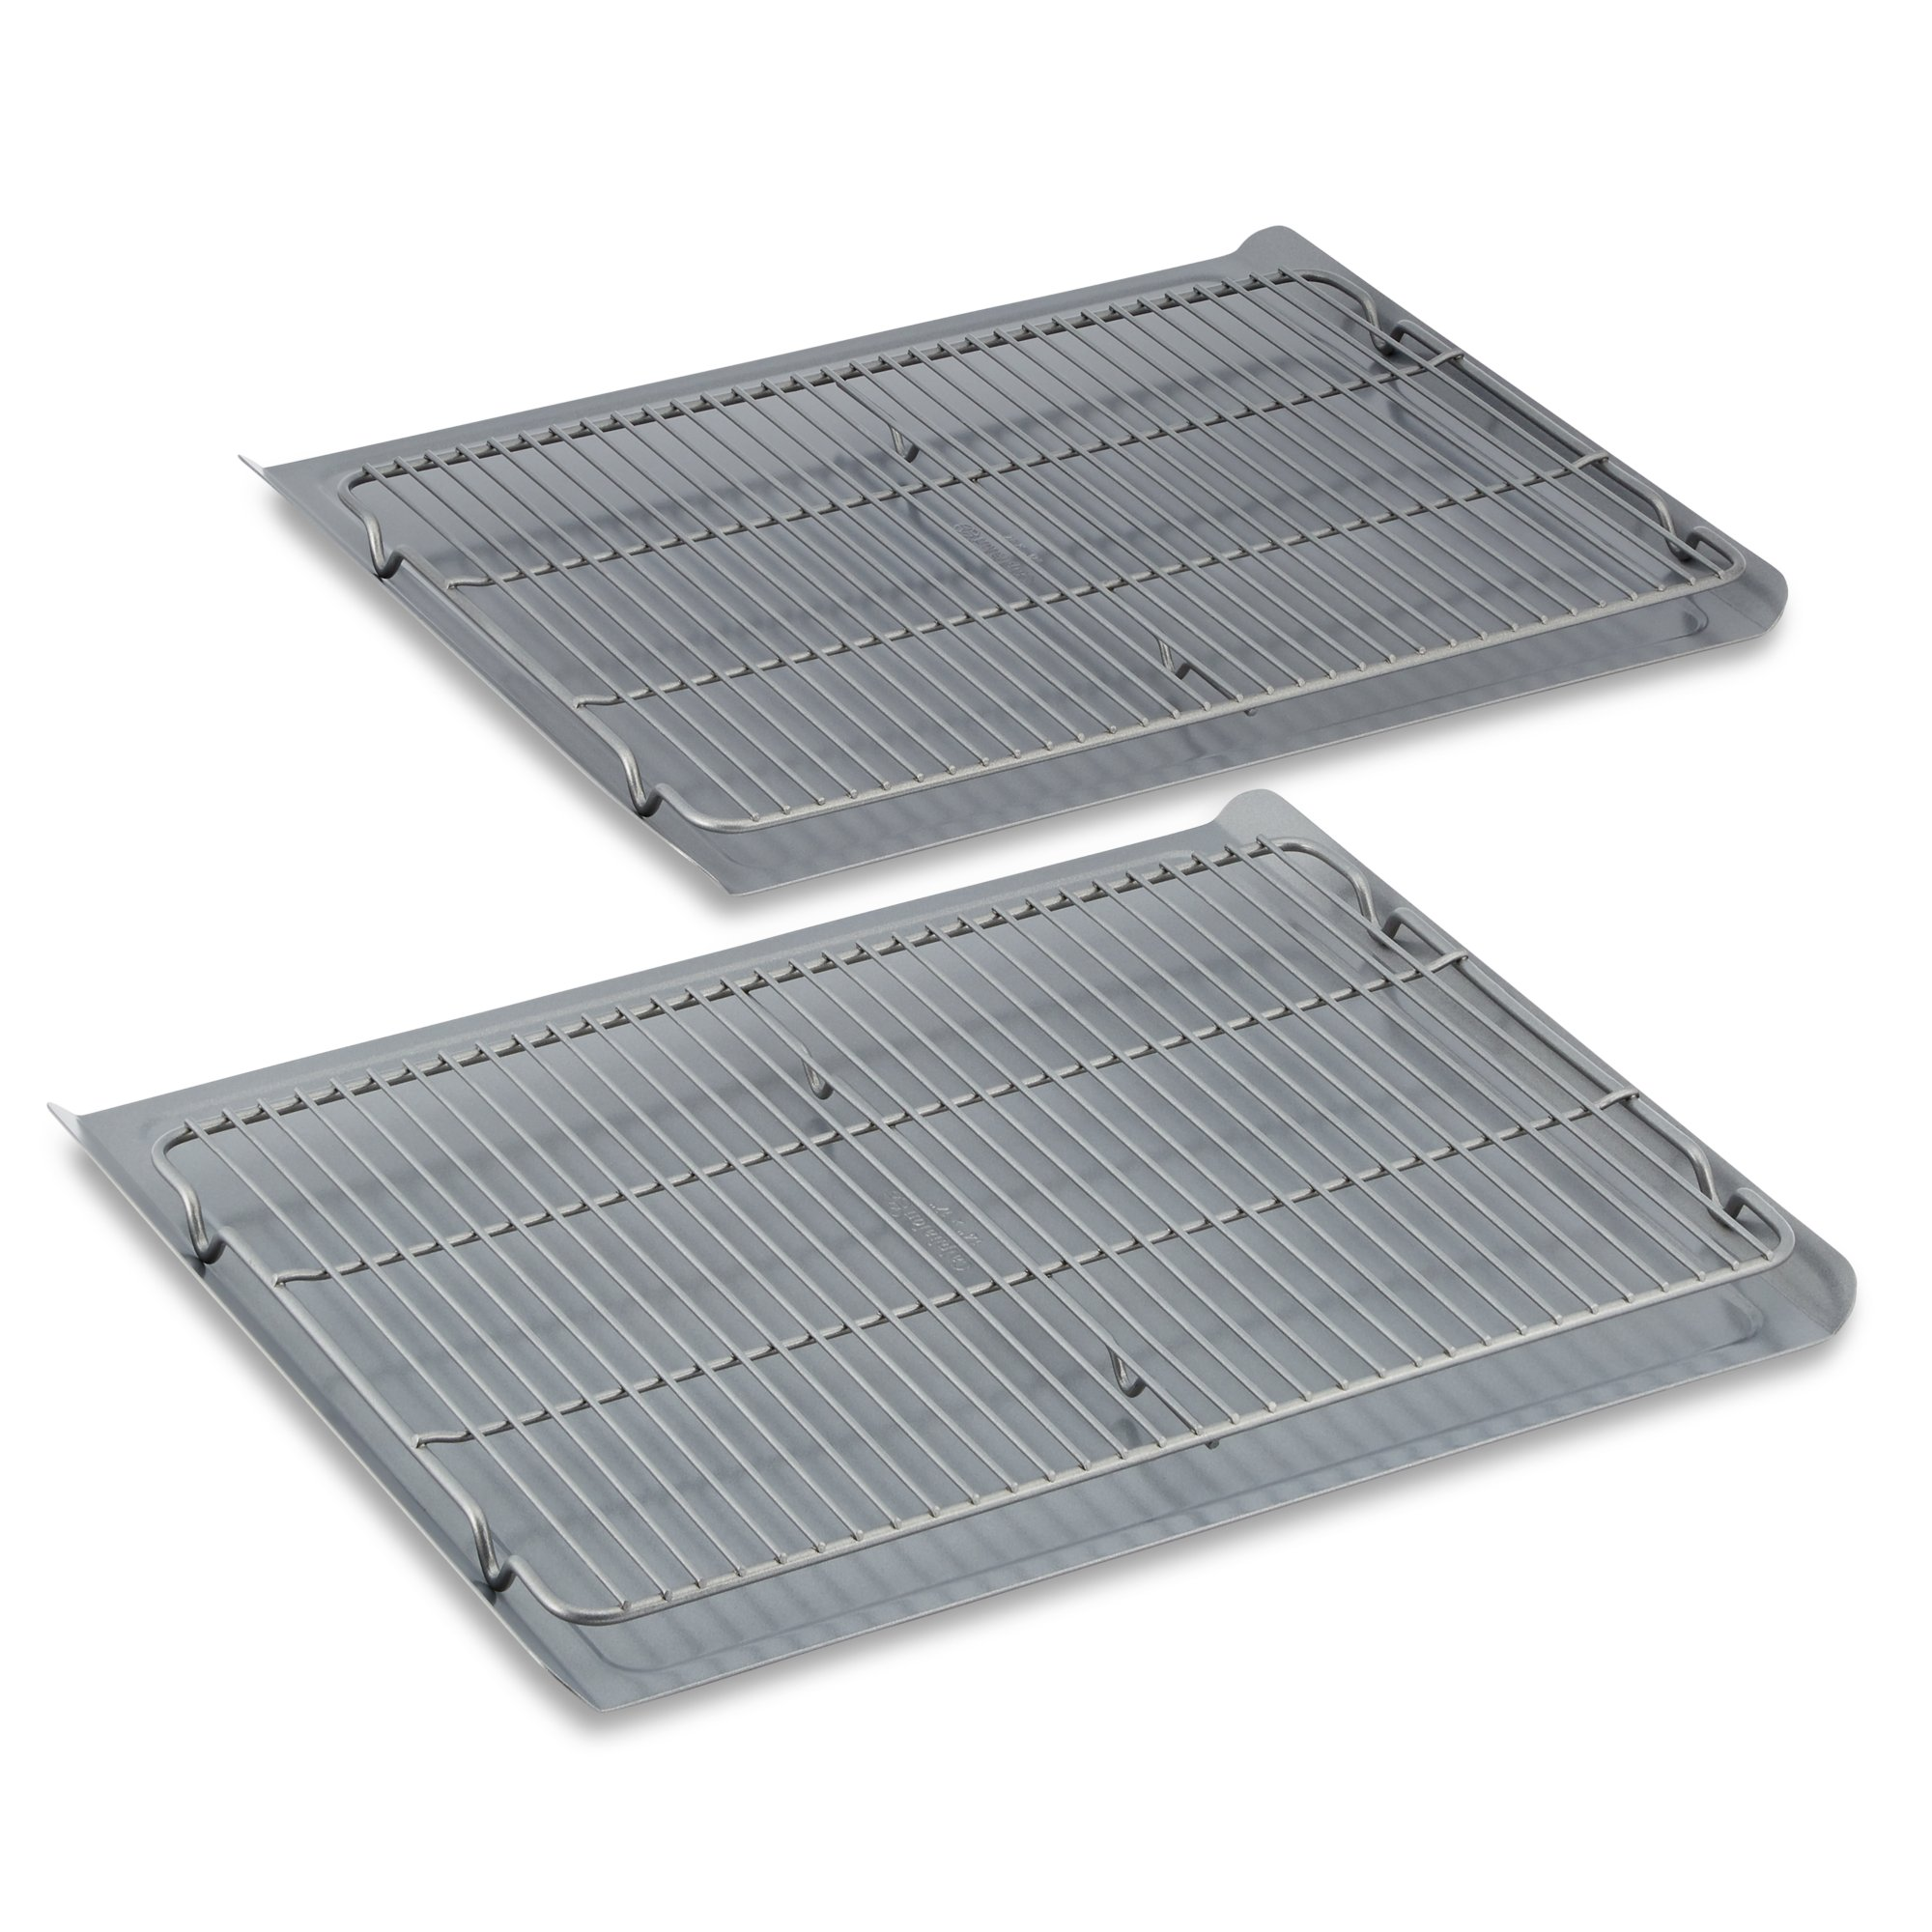 Calphalon Nonstick Bakeware 4-pc. Cookie Sheet Set